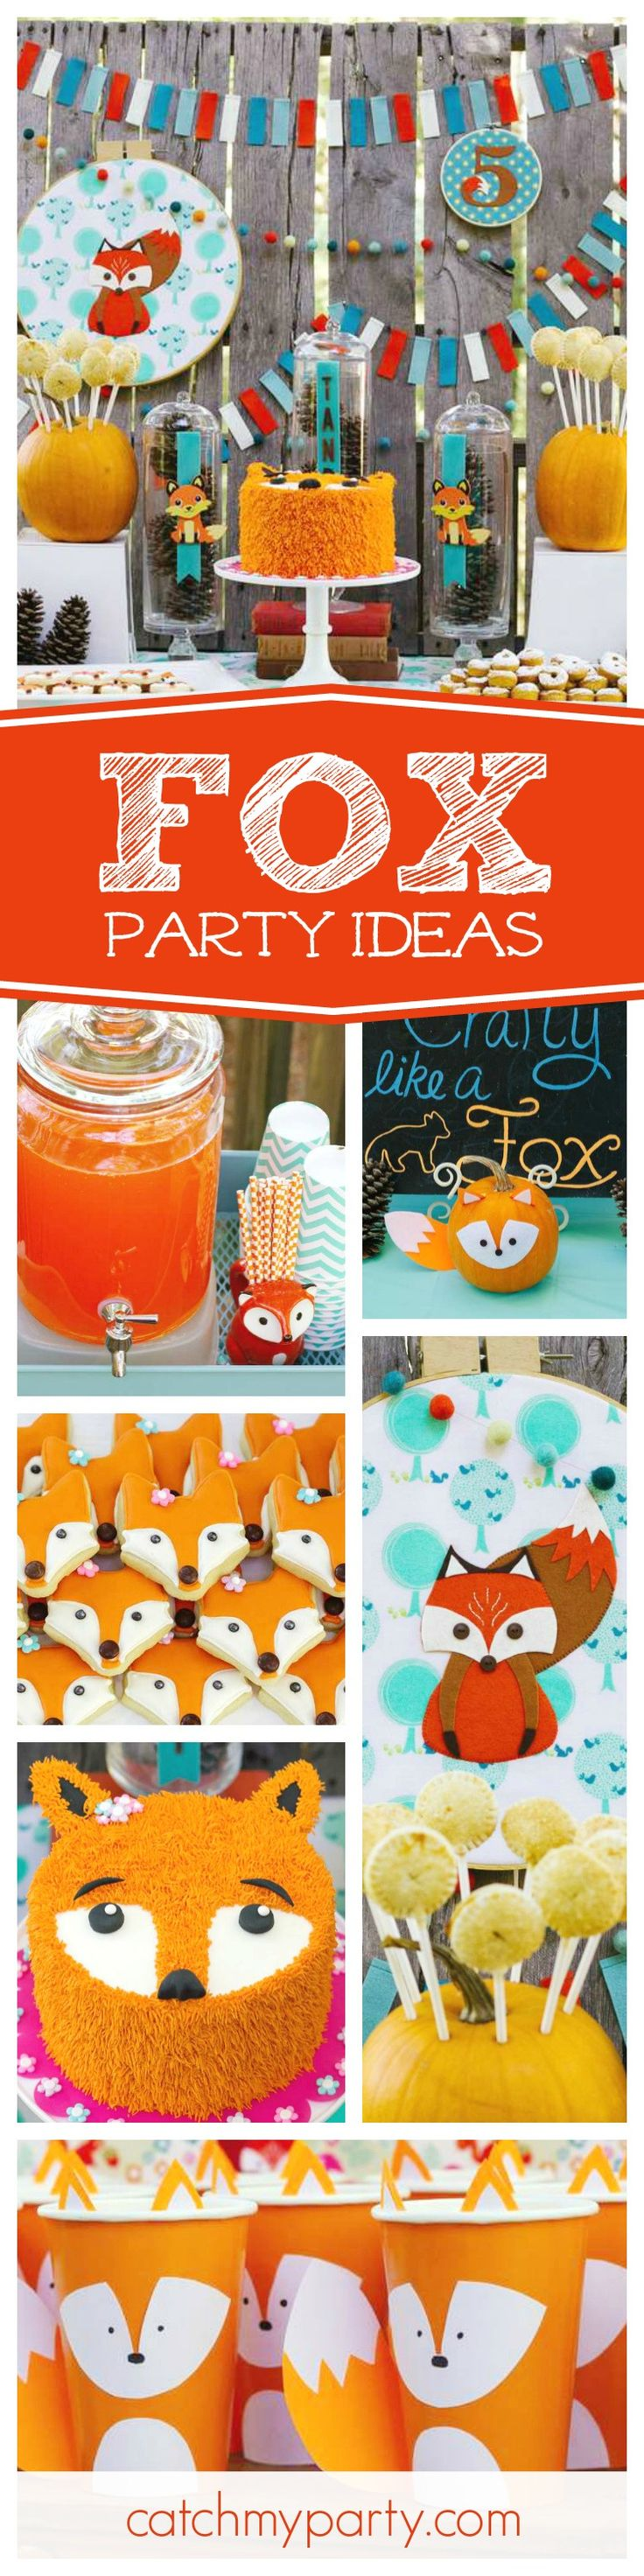 Check out this fantastic Crafty like a Fox themed birthday party. The fox cake and cookies are amazing!! See more party ideas and share yours at CatchMyParty.com